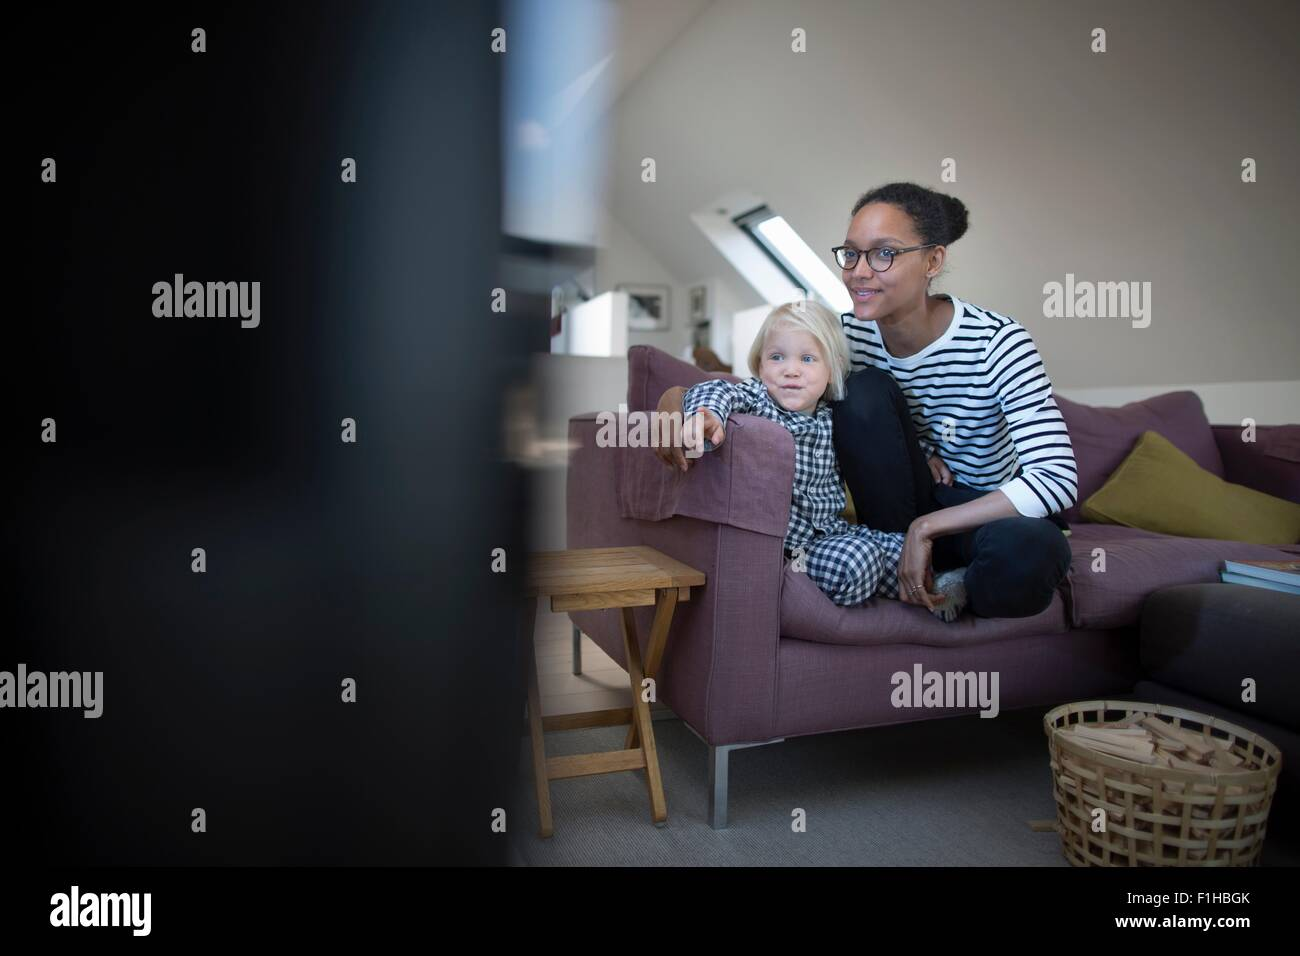 Mother and son sitting on sofa watching television - Stock Image